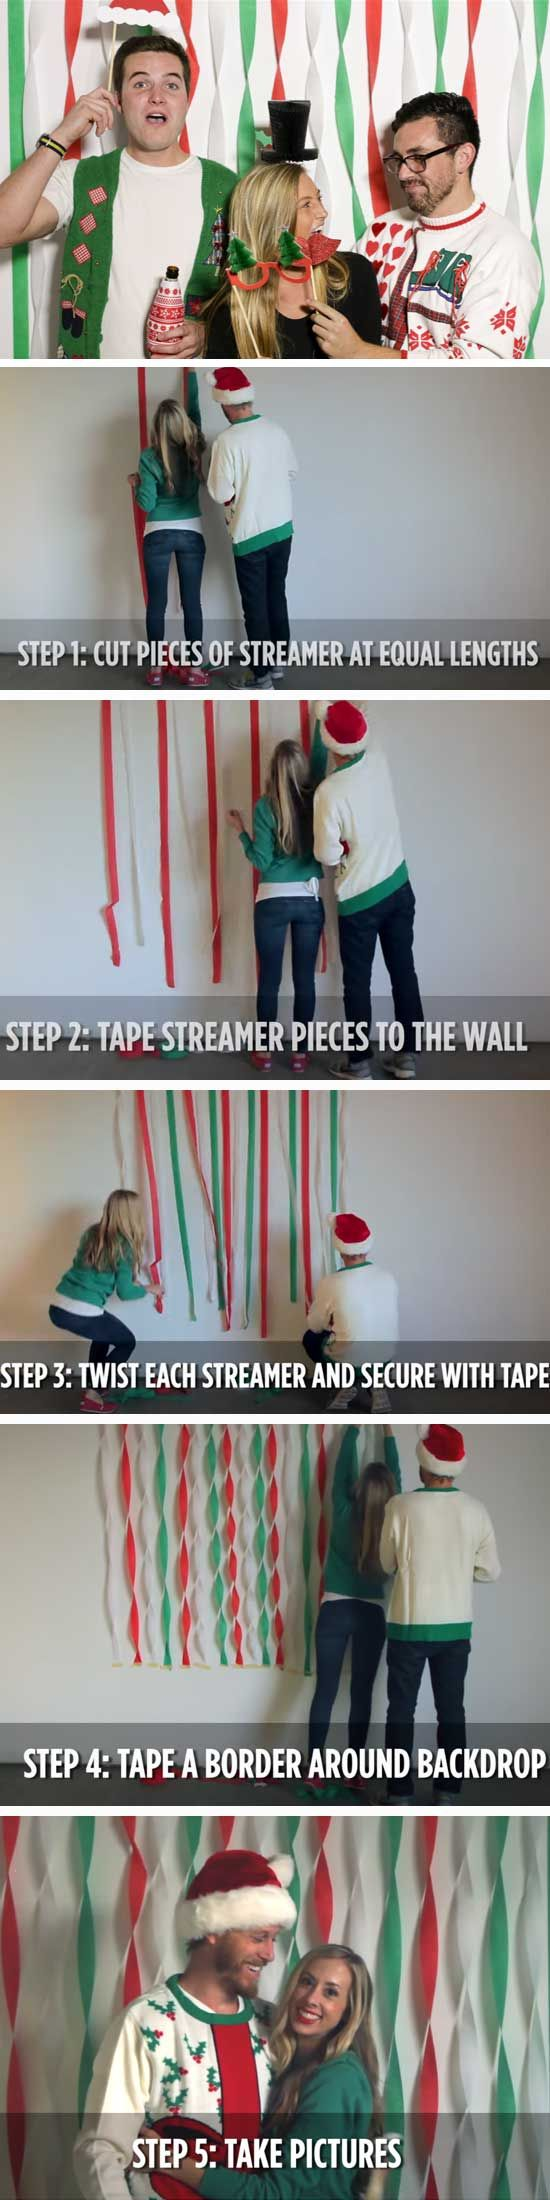 Ideas For Adult Christmas Party Part - 15: Festive Photobooth | 20 DIY Christmas Party Ideas For Adults